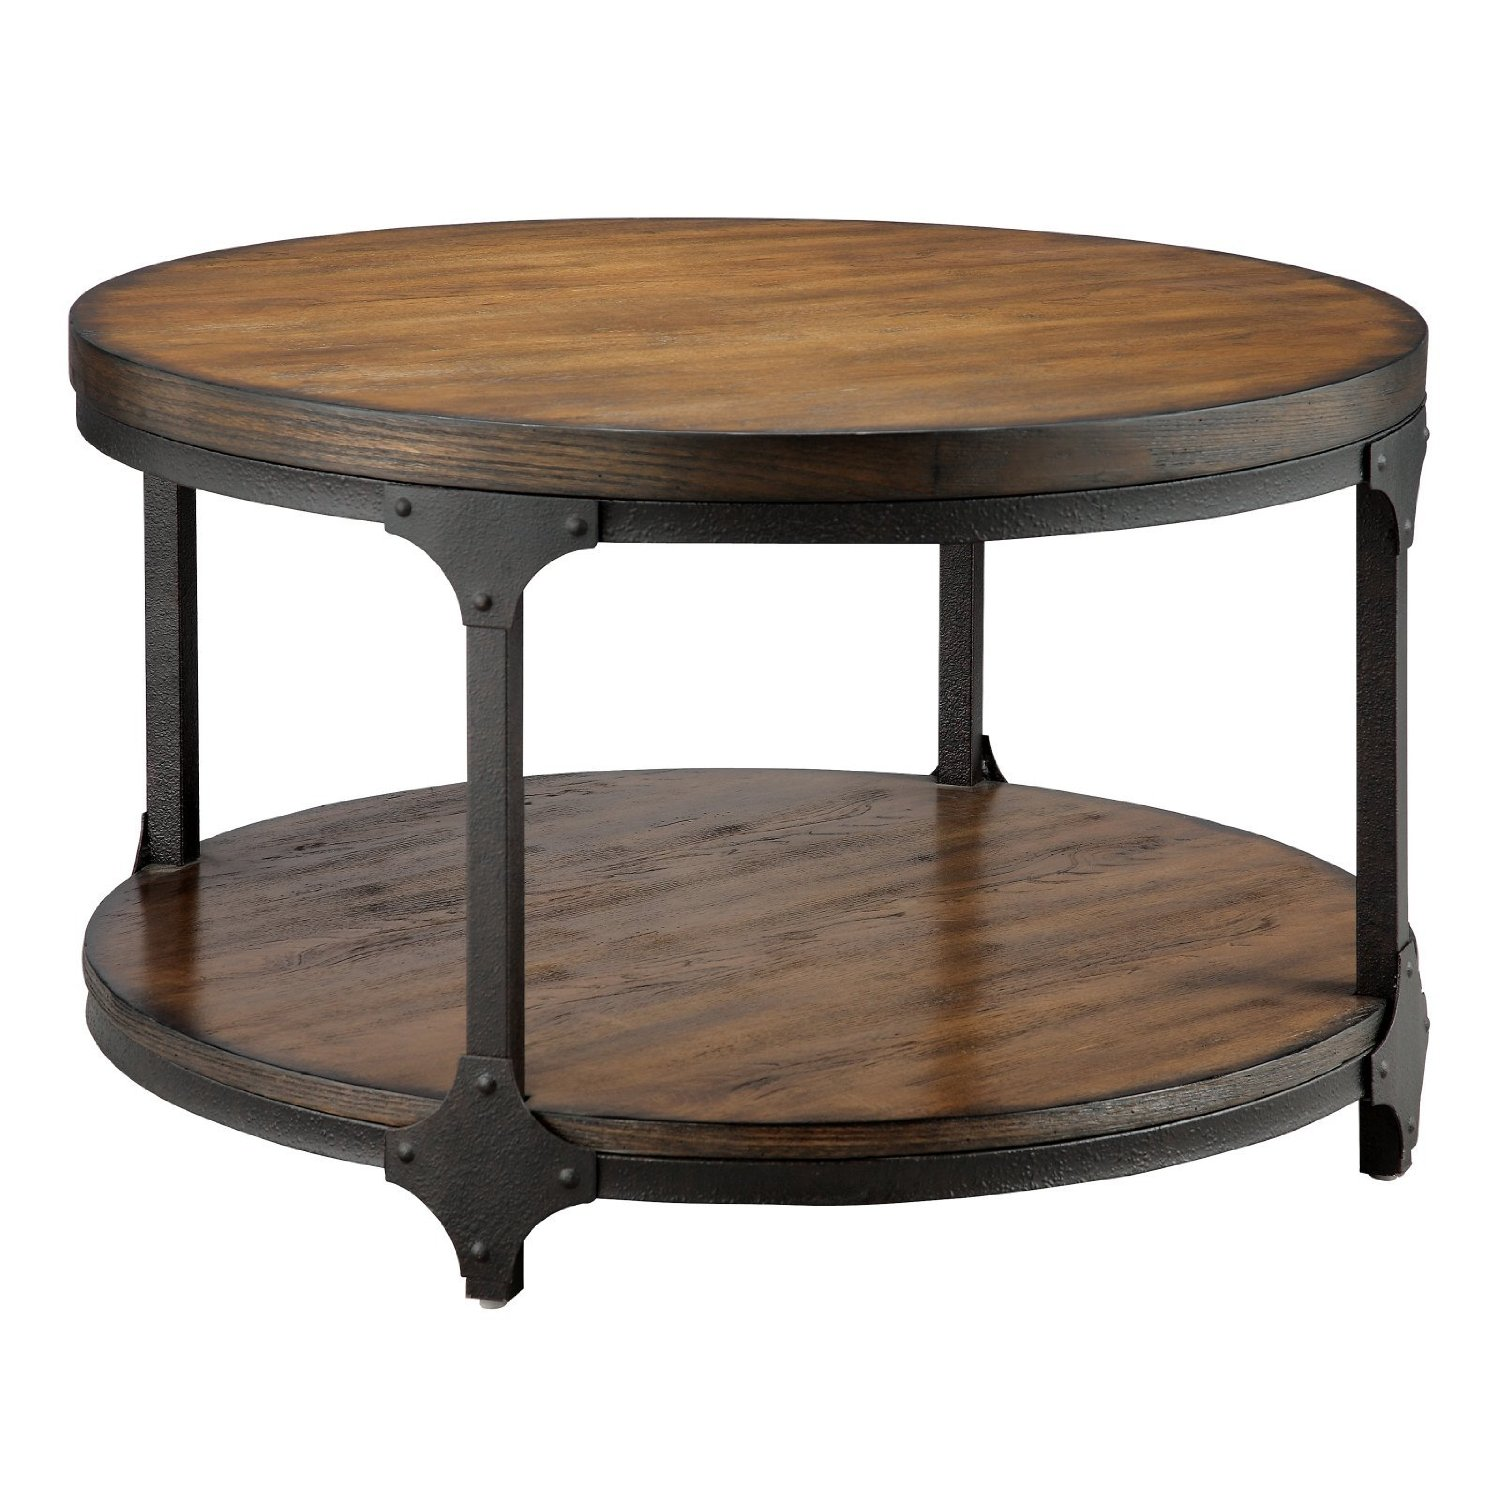 Furniture Living Room Round Wooden Coffee Table With Ladder Shelf And Black  Metal Frame Round Metal